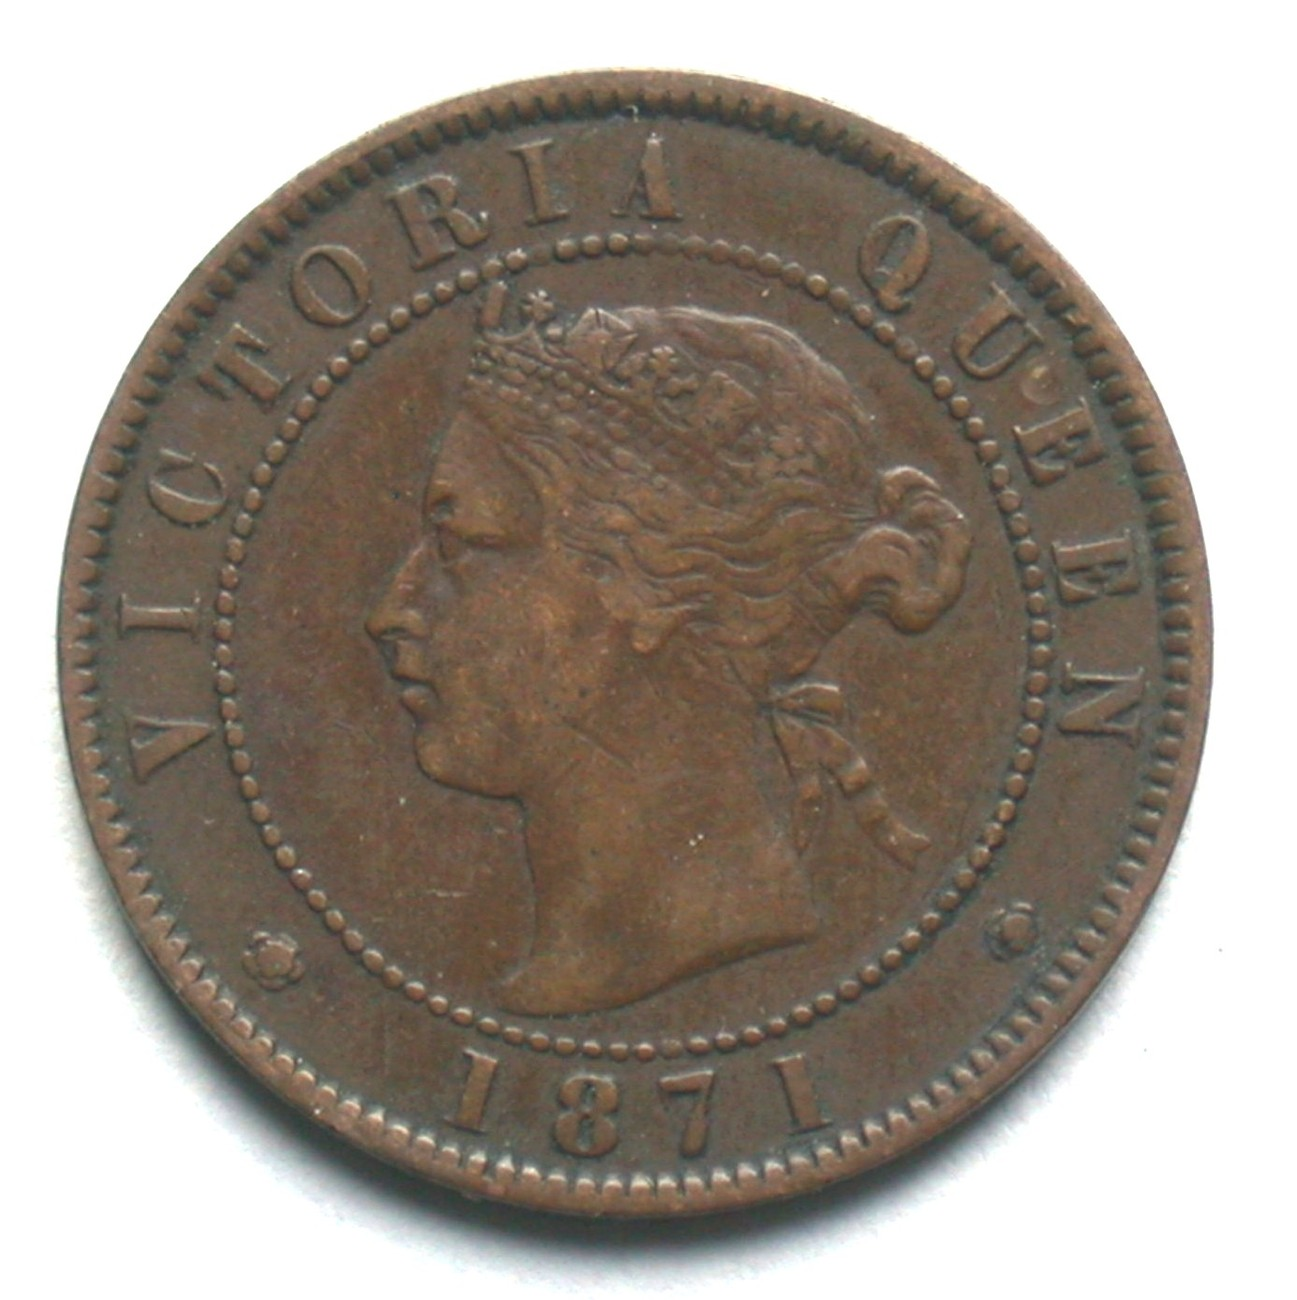 1871 Prince Edward Island One Cent Coin Queen Victoria 1 PEI